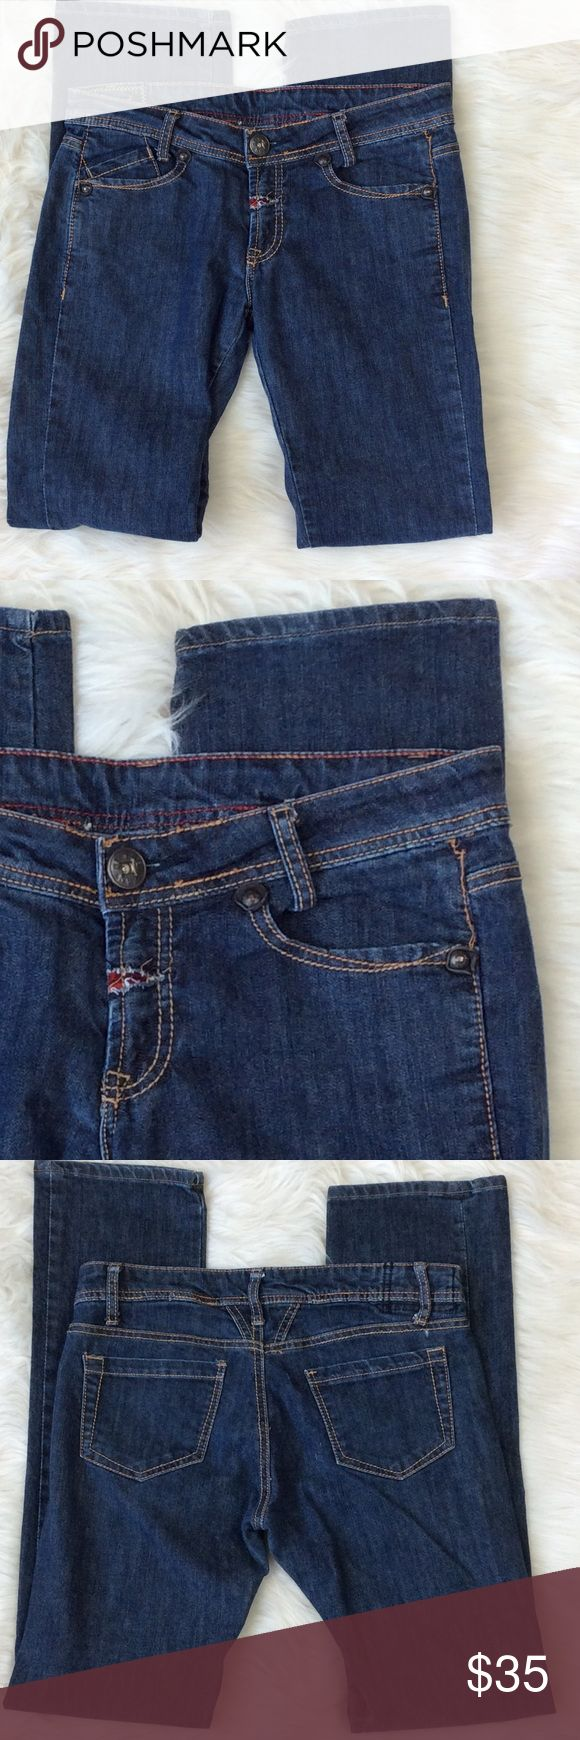 "Marithe Francois Girbaud Straight Leg Jeans Excellent condition.  Cotton with stretch. Medium wash. Straight leg. Size 27"" measurements approximately: waist 27"" inseam 31"" total length 40"" rise approximately 9"" Marithe Francois Girbaud Jeans Straight Leg"